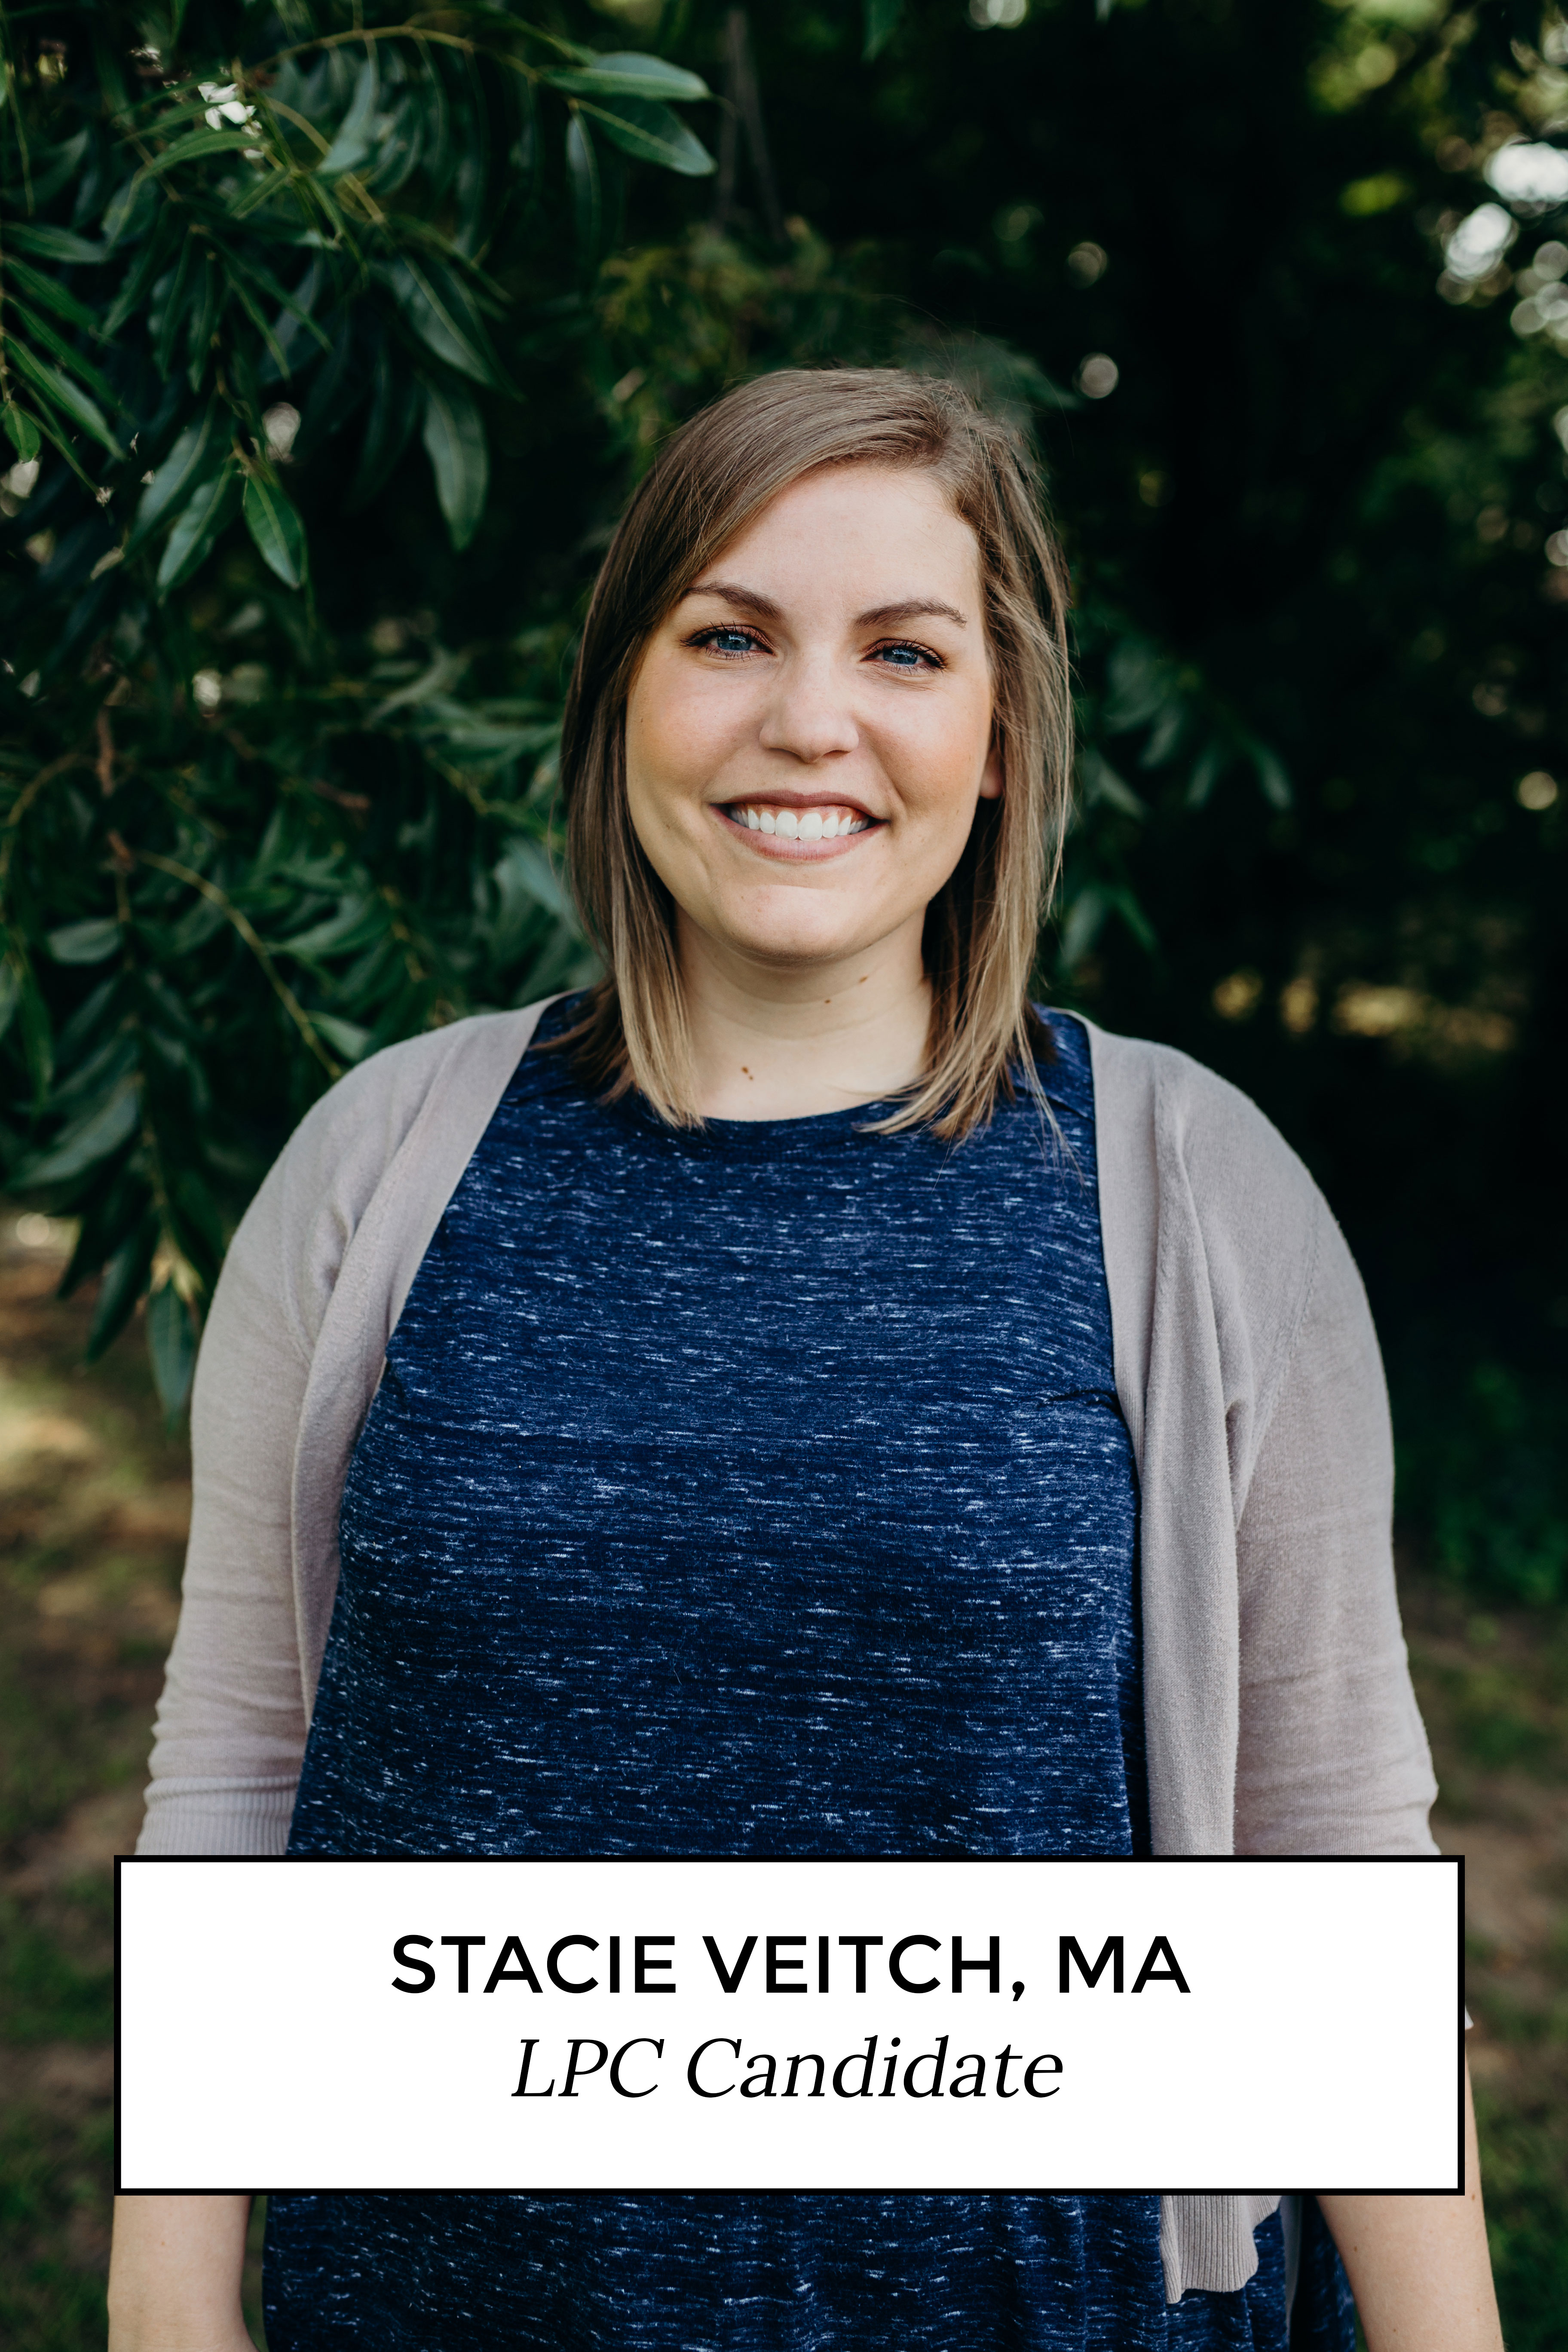 Stacie Veitch, MA, LPC Candidate